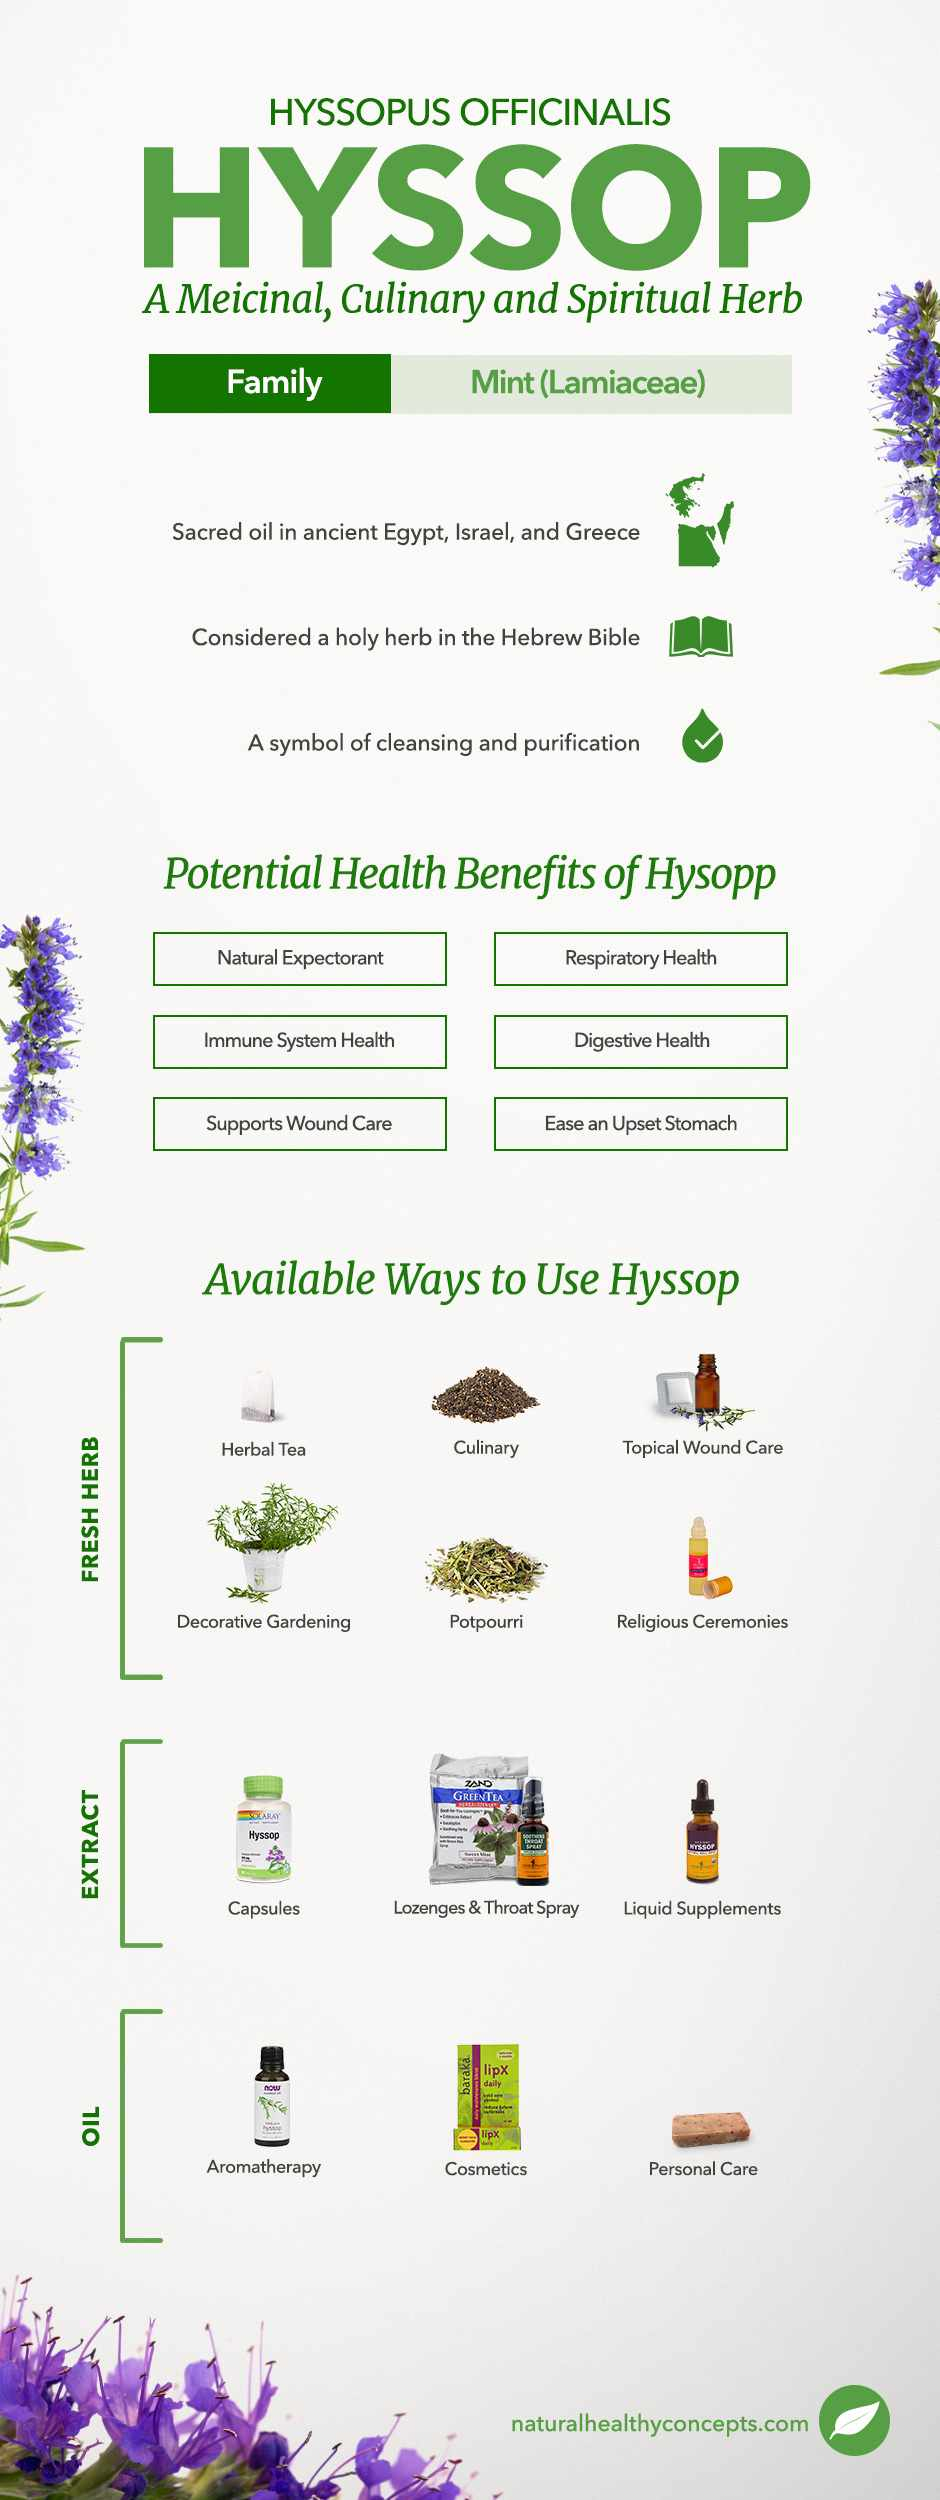 hyssop infographic